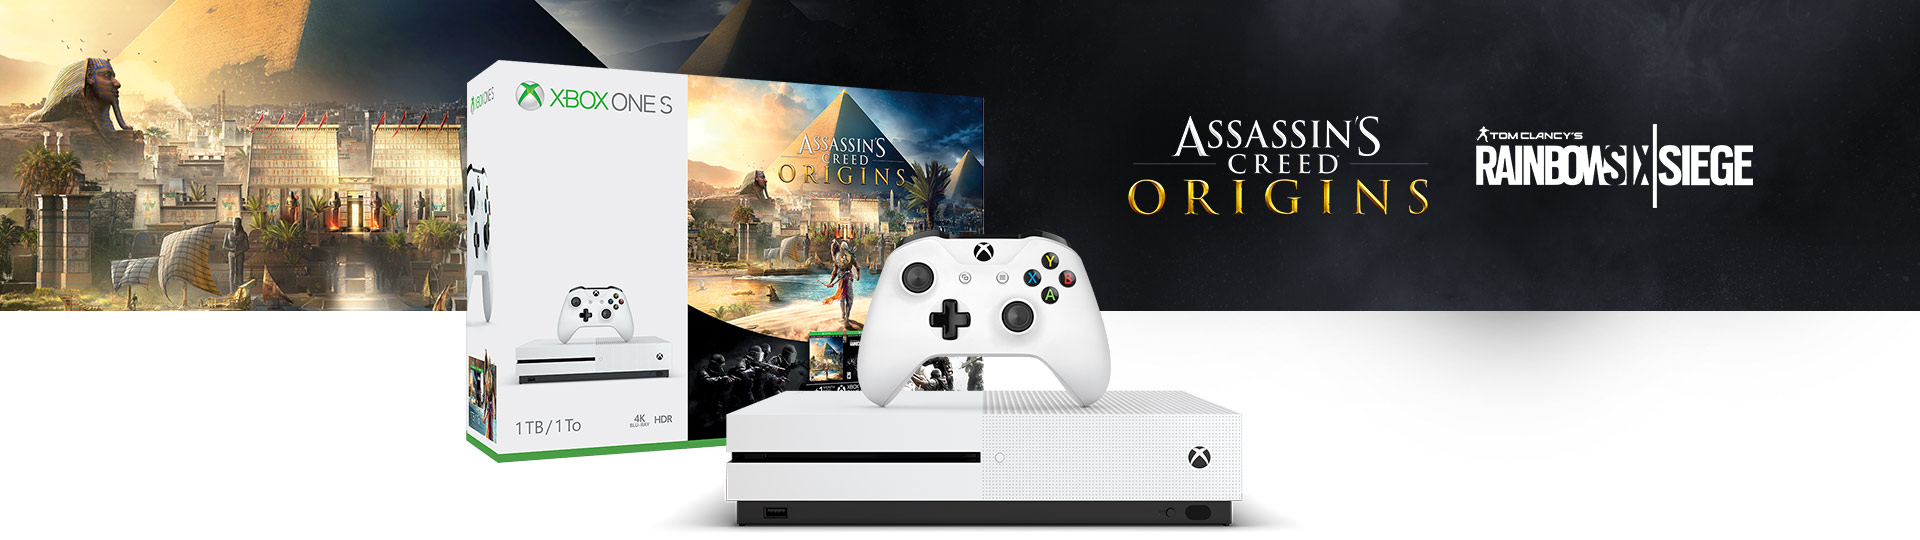 Xbox One S Assassin's Creed: Origins bonusbundel (1TB)